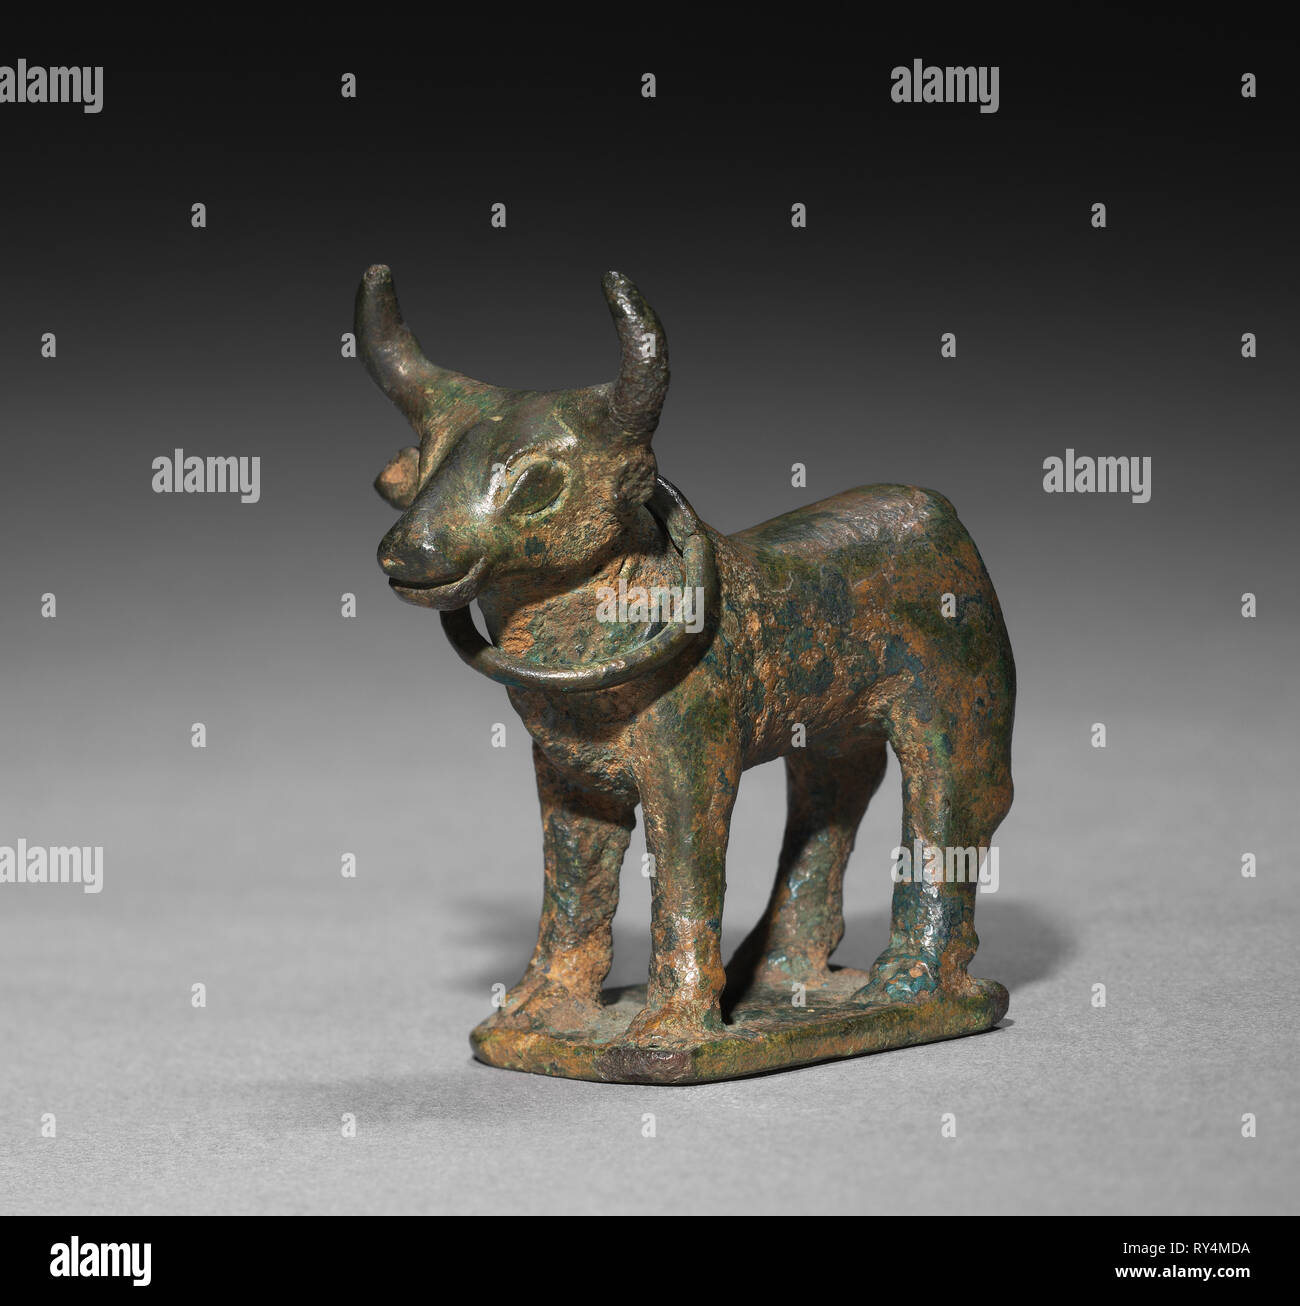 Statuette of a Bull with Curved Horns, probably late 2nd millennium BC. Provenance uncertain, Probably late 2nd millennium BC. Bronze; overall: 6.1 x 2.9 x 6.4 cm (2 3/8 x 1 1/8 x 2 1/2 in.); with base: 7.4 x 2.9 x 6.4 cm (2 15/16 x 1 1/8 x 2 1/2 in - Stock Image